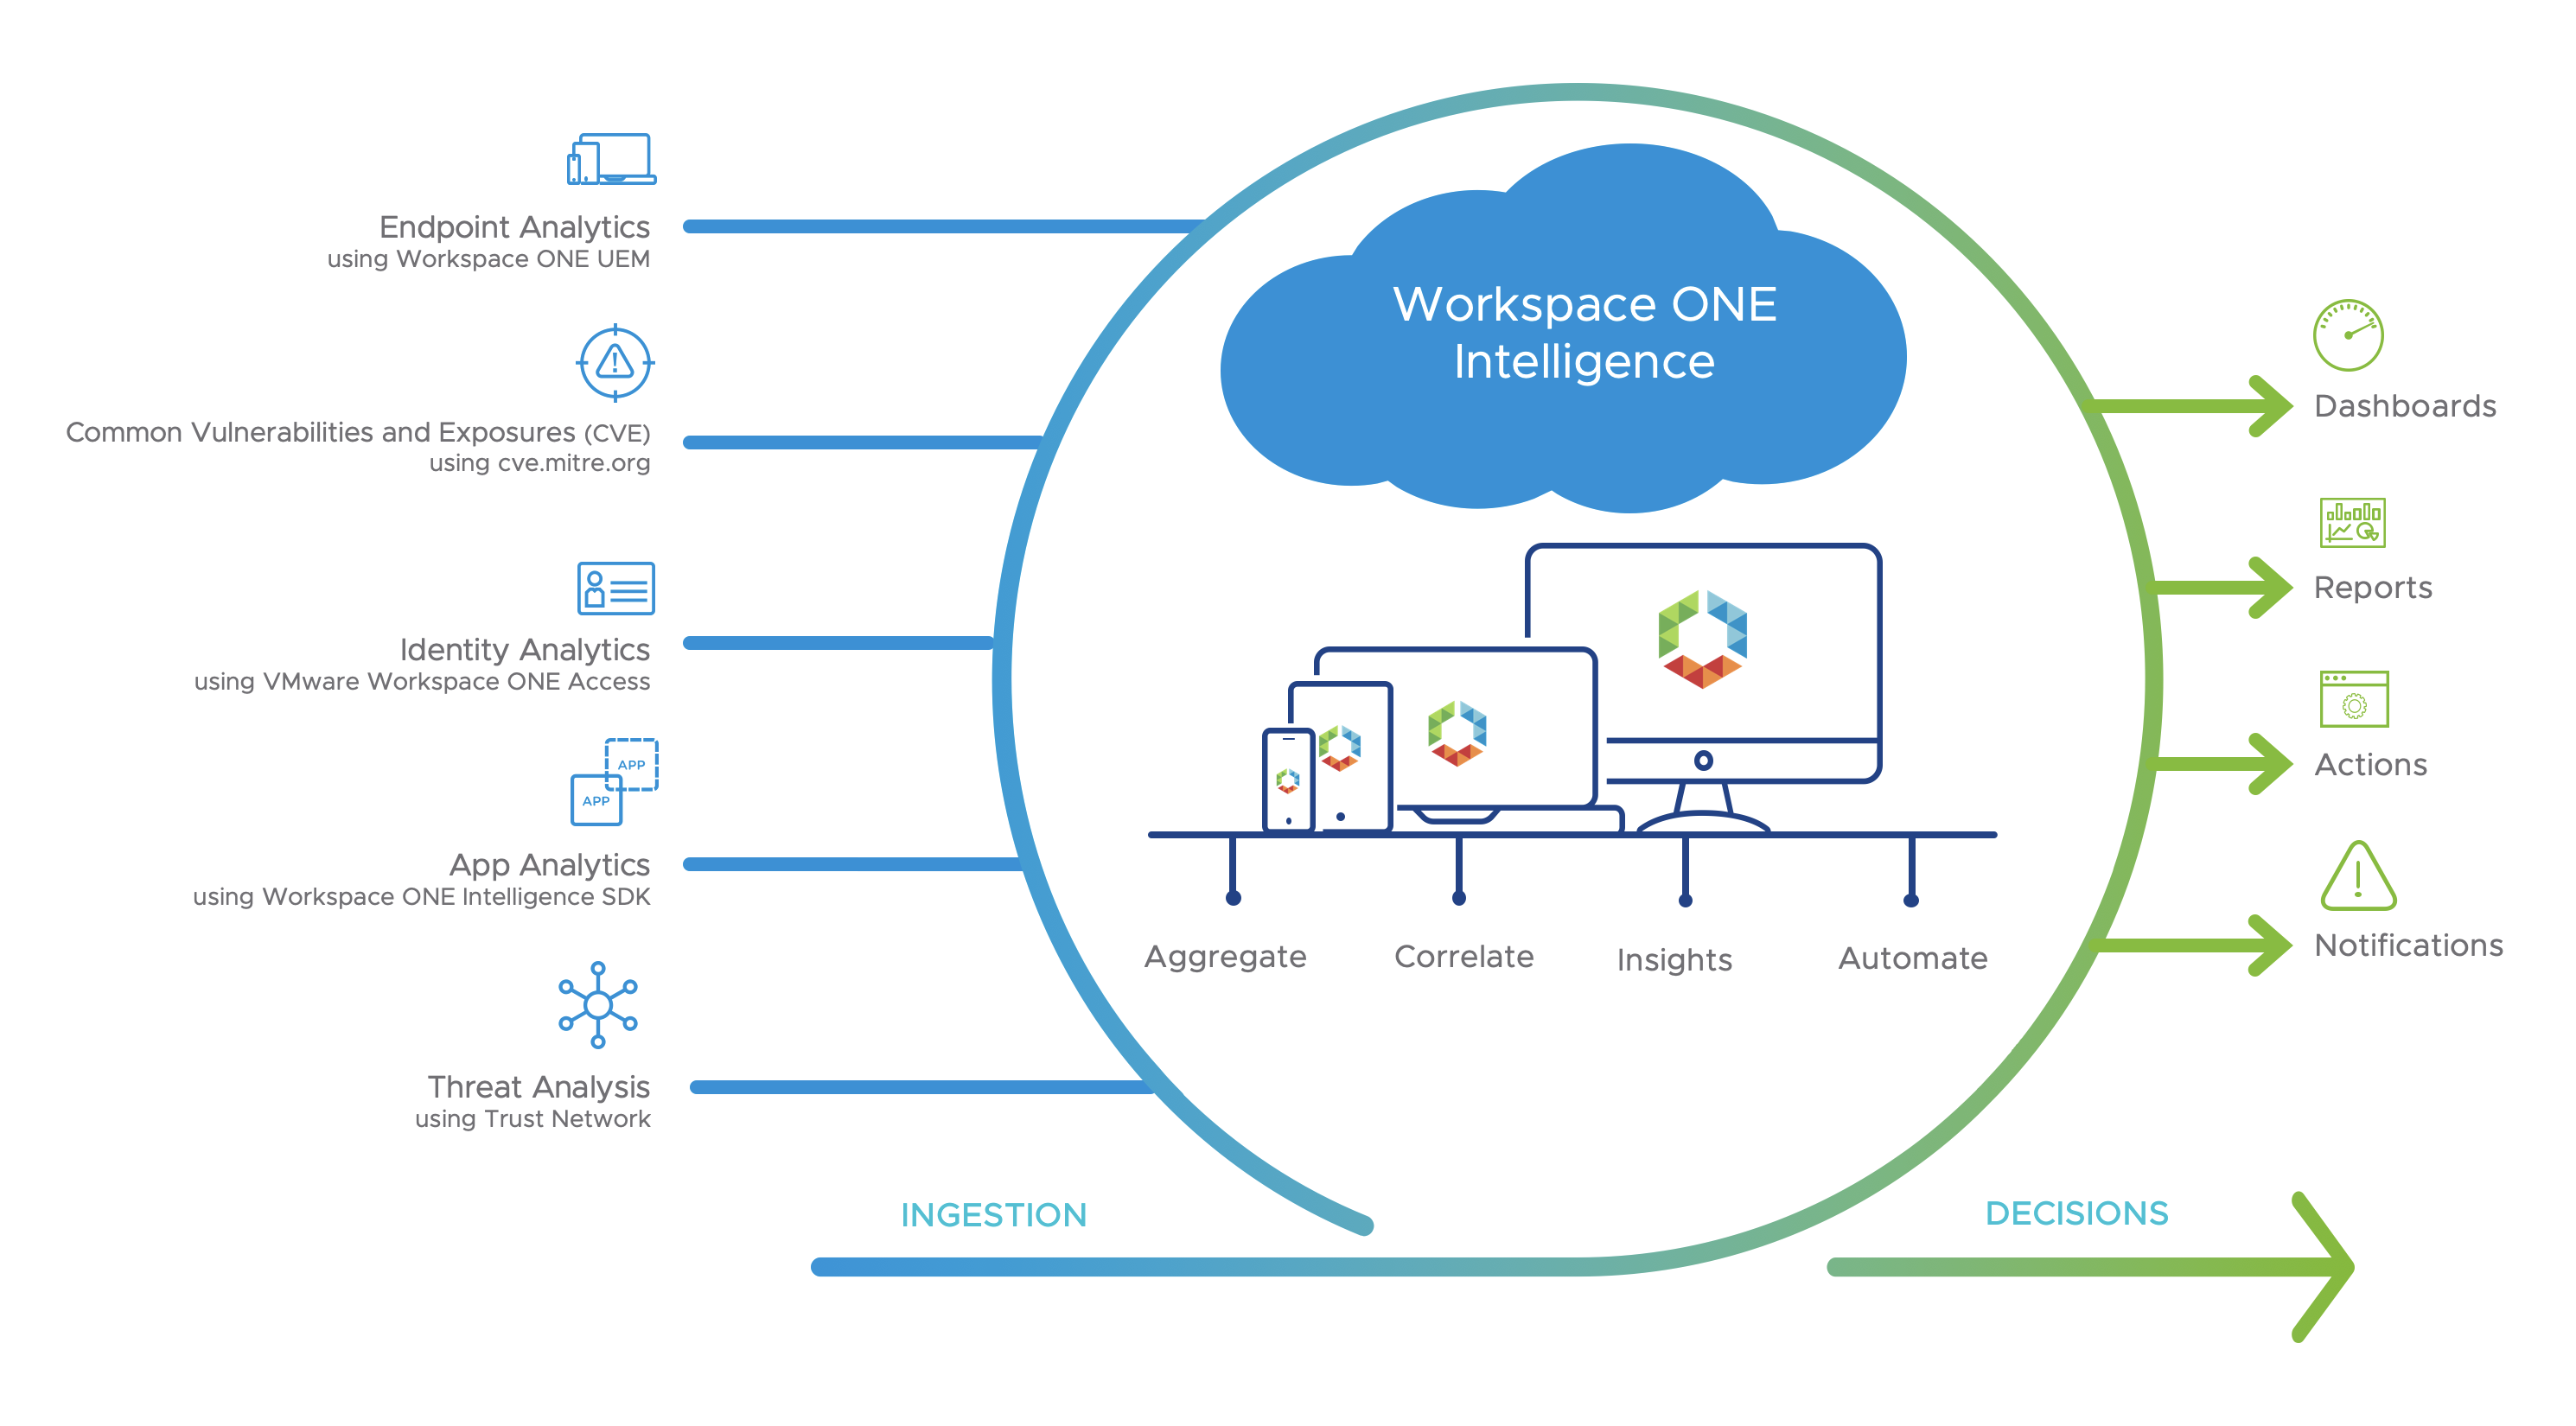 Workspace ONE Intelligence Logical Overview